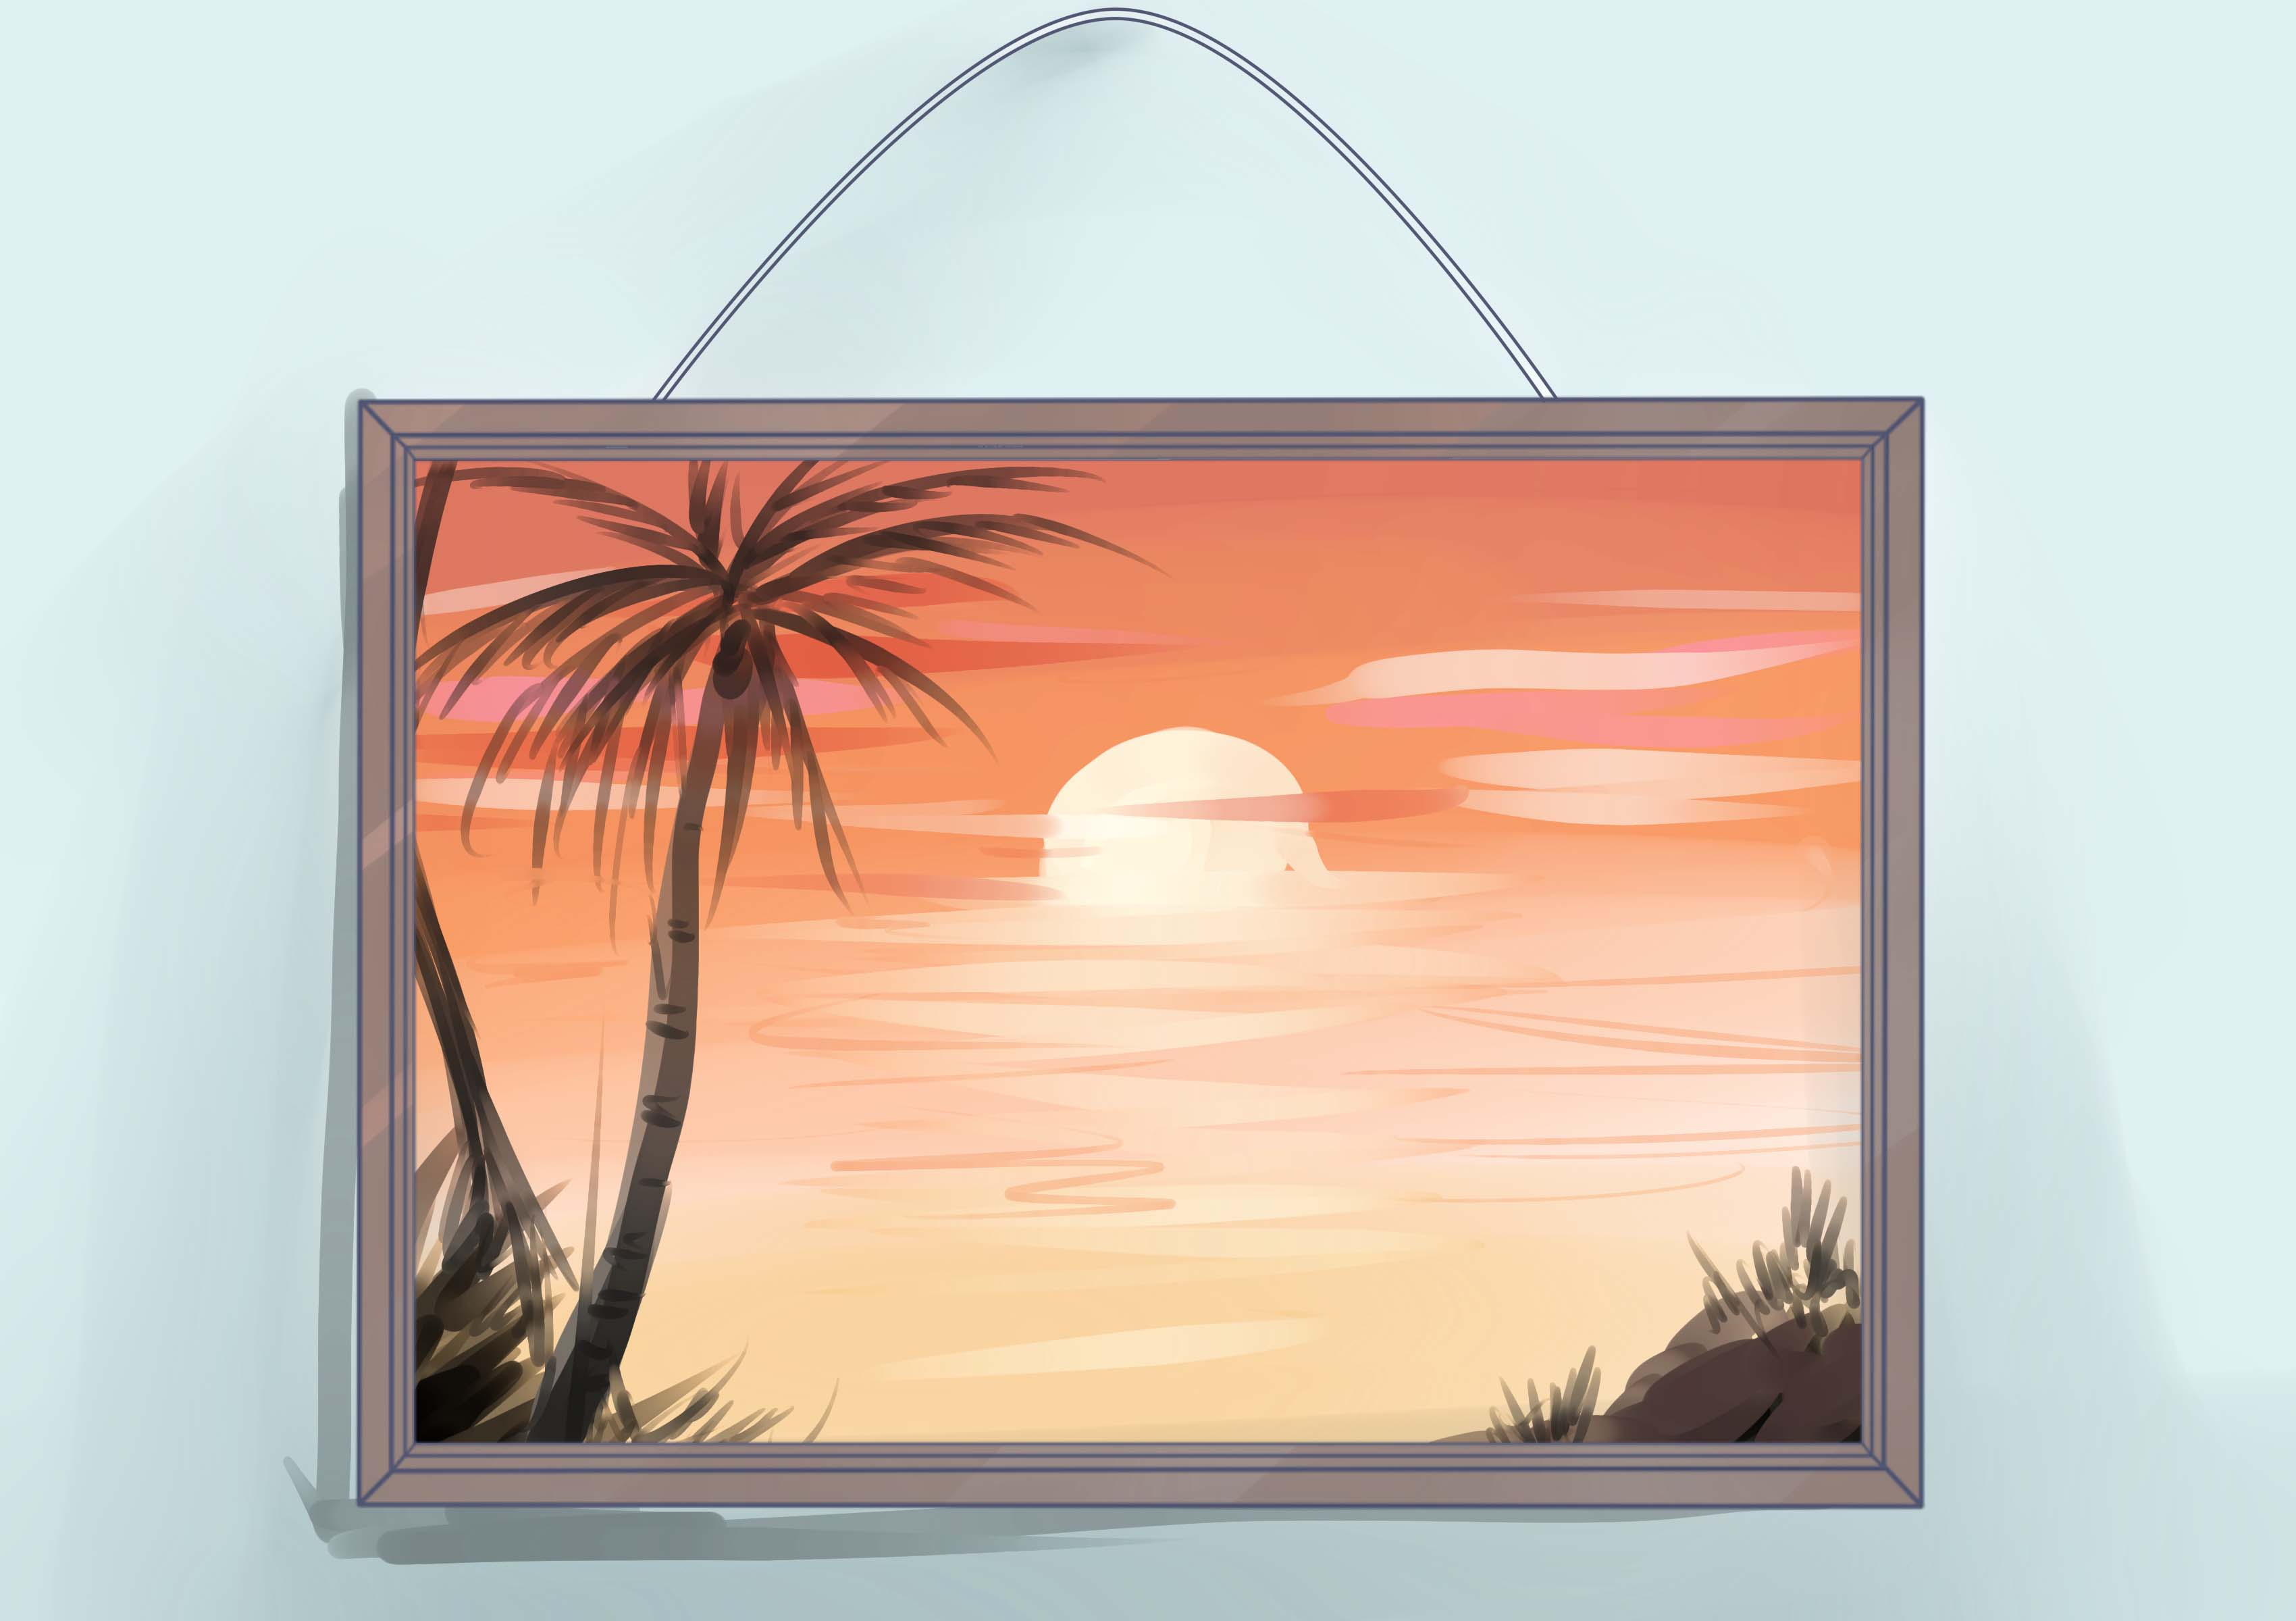 Painting Frames How To Frame An Oil Painting With Pictures Wikihow